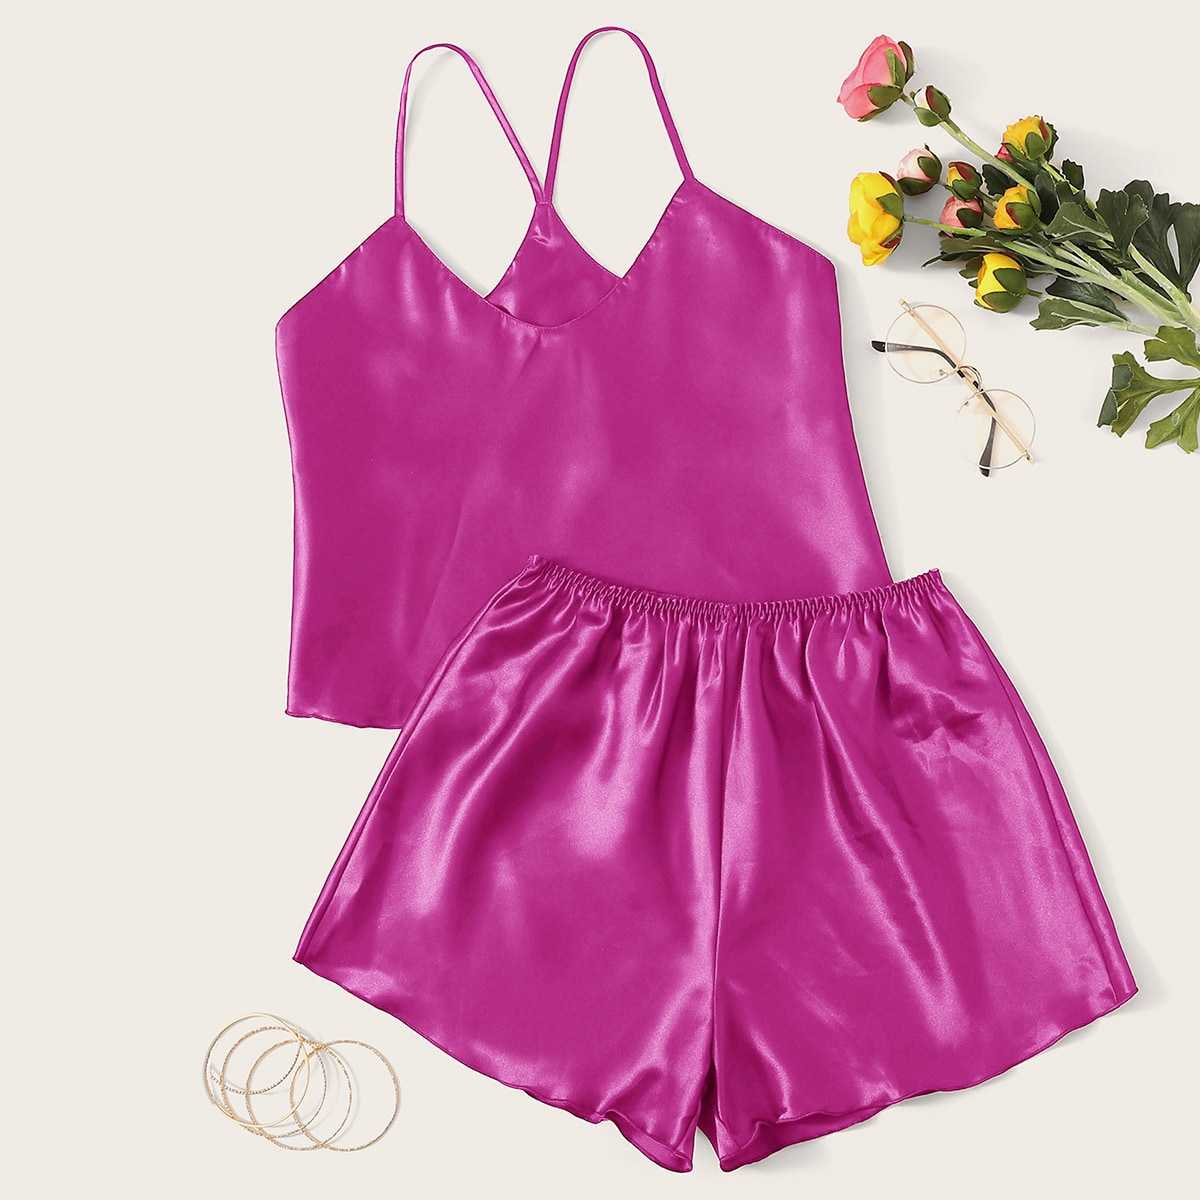 Satin Cami Top With Shorts PJ Set in Pink Bright by ROMWE on GOOFASH